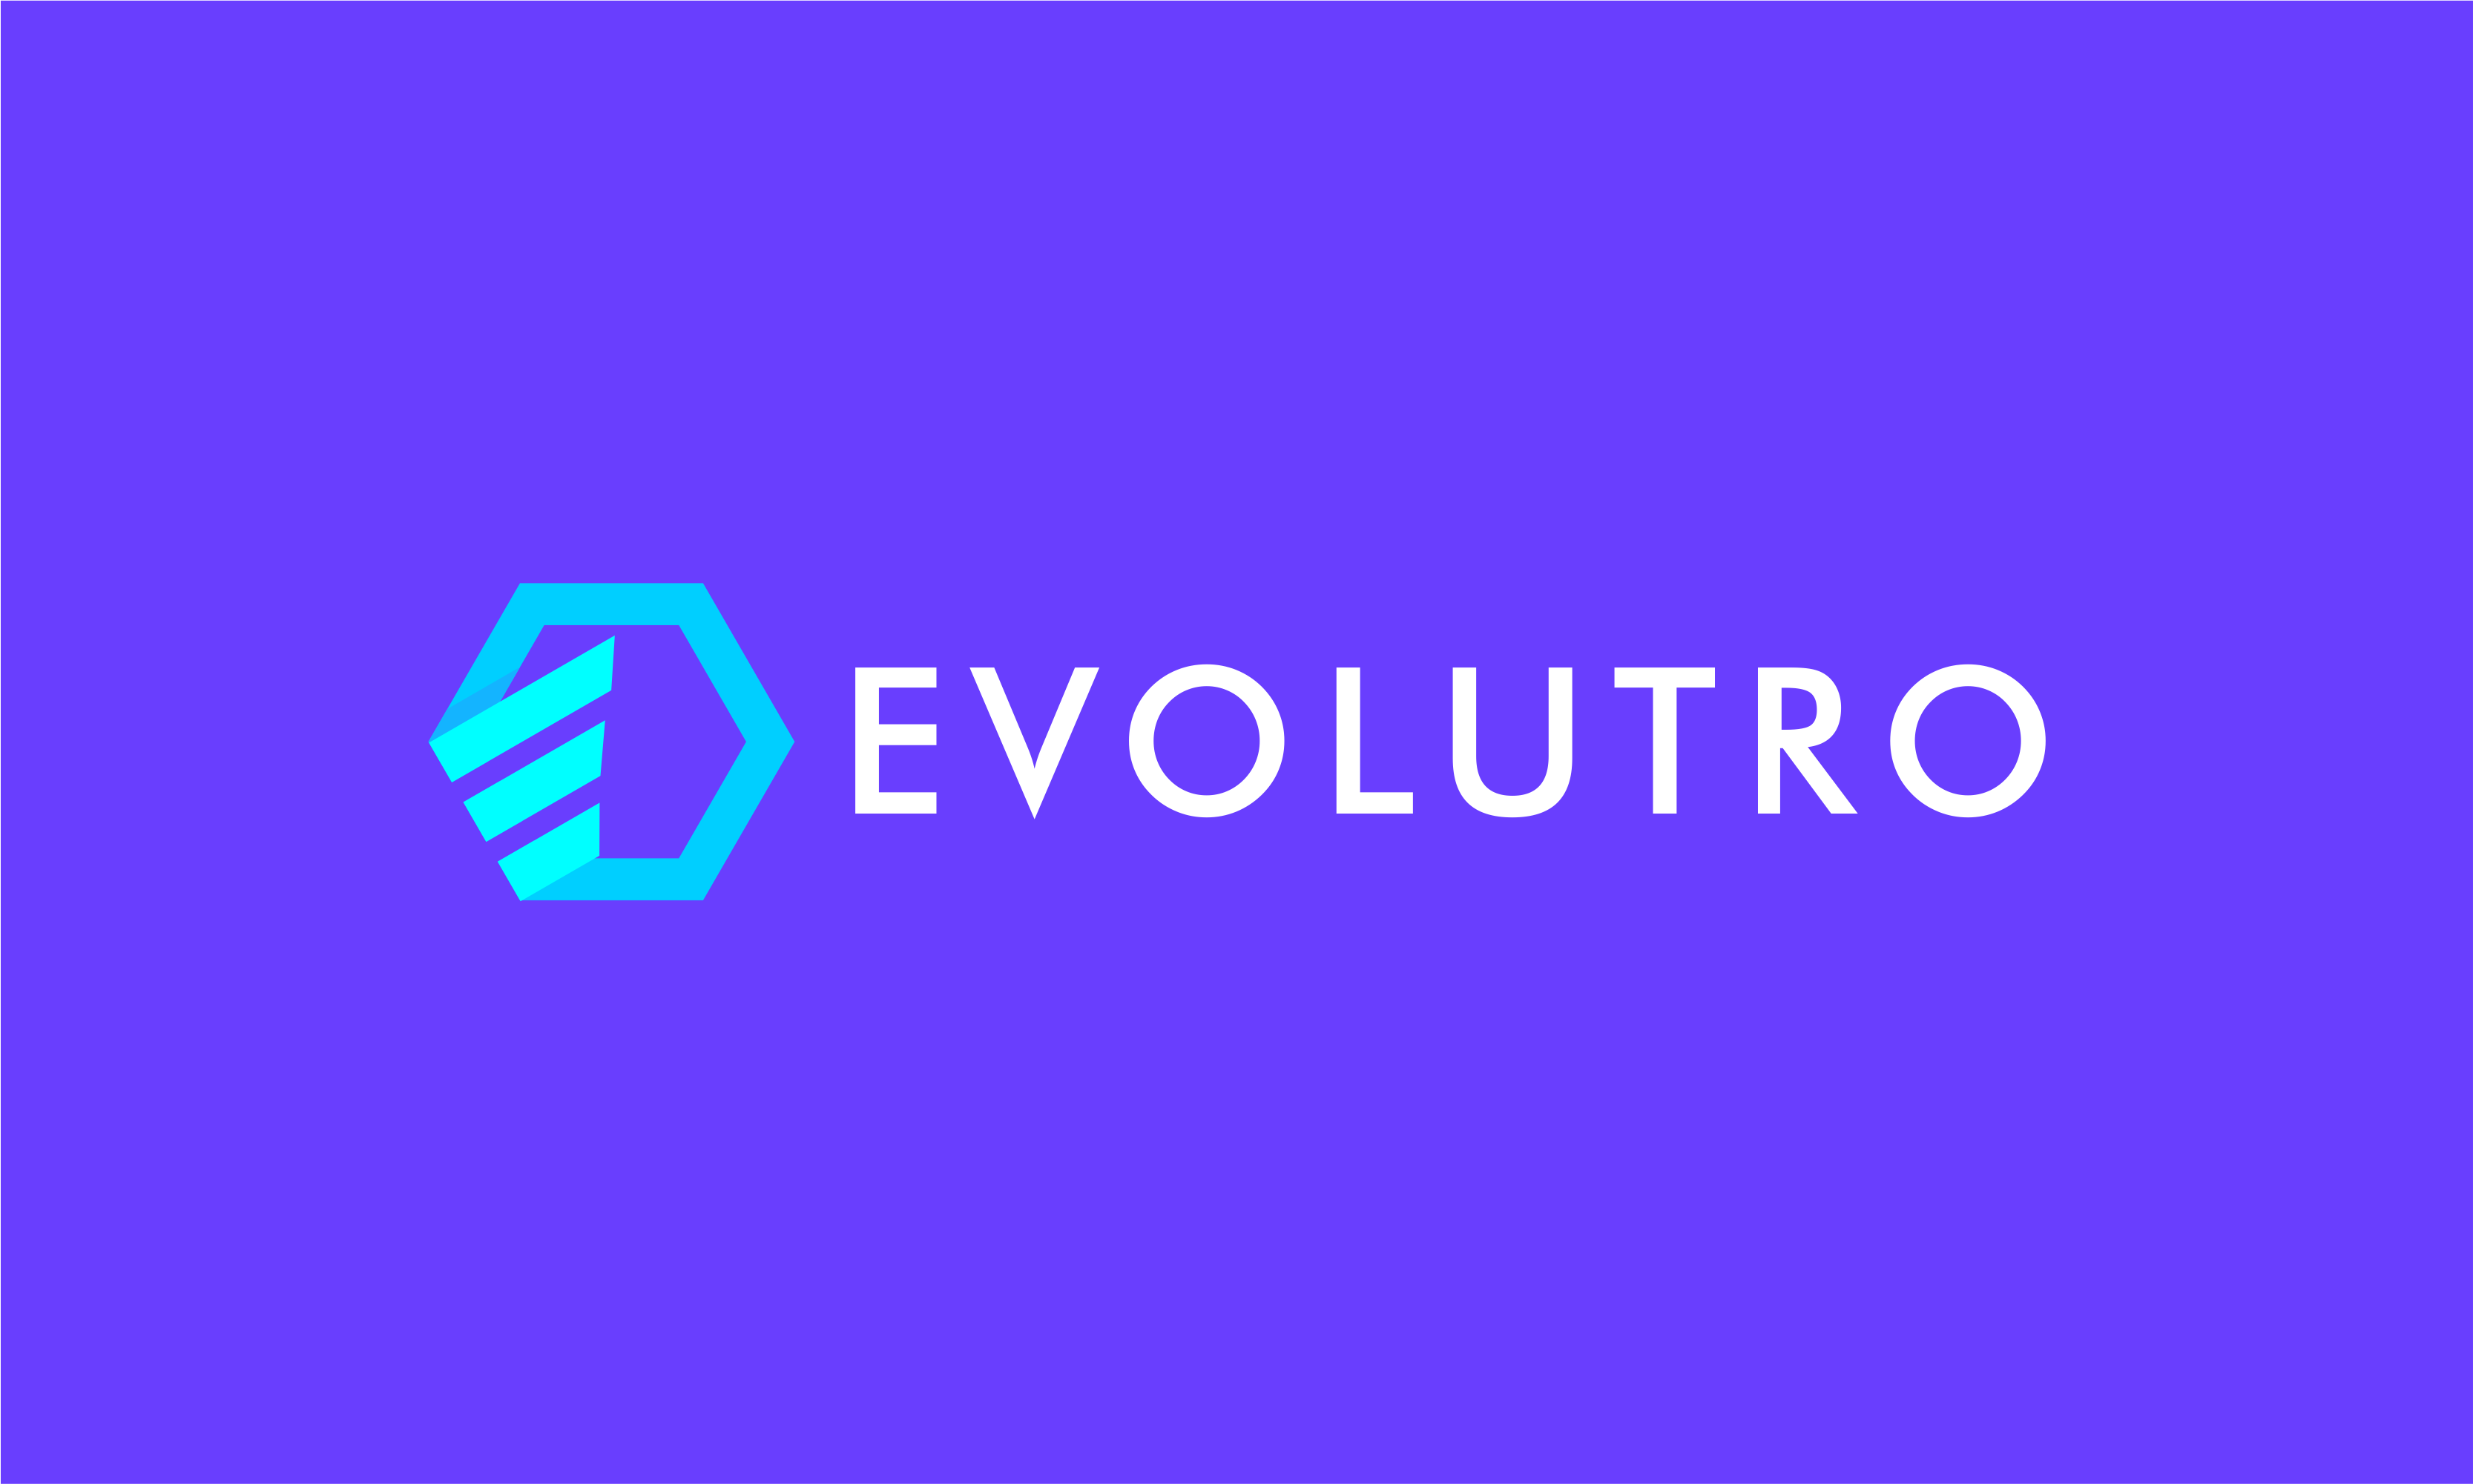 Evolutro - Invented domain name for sale